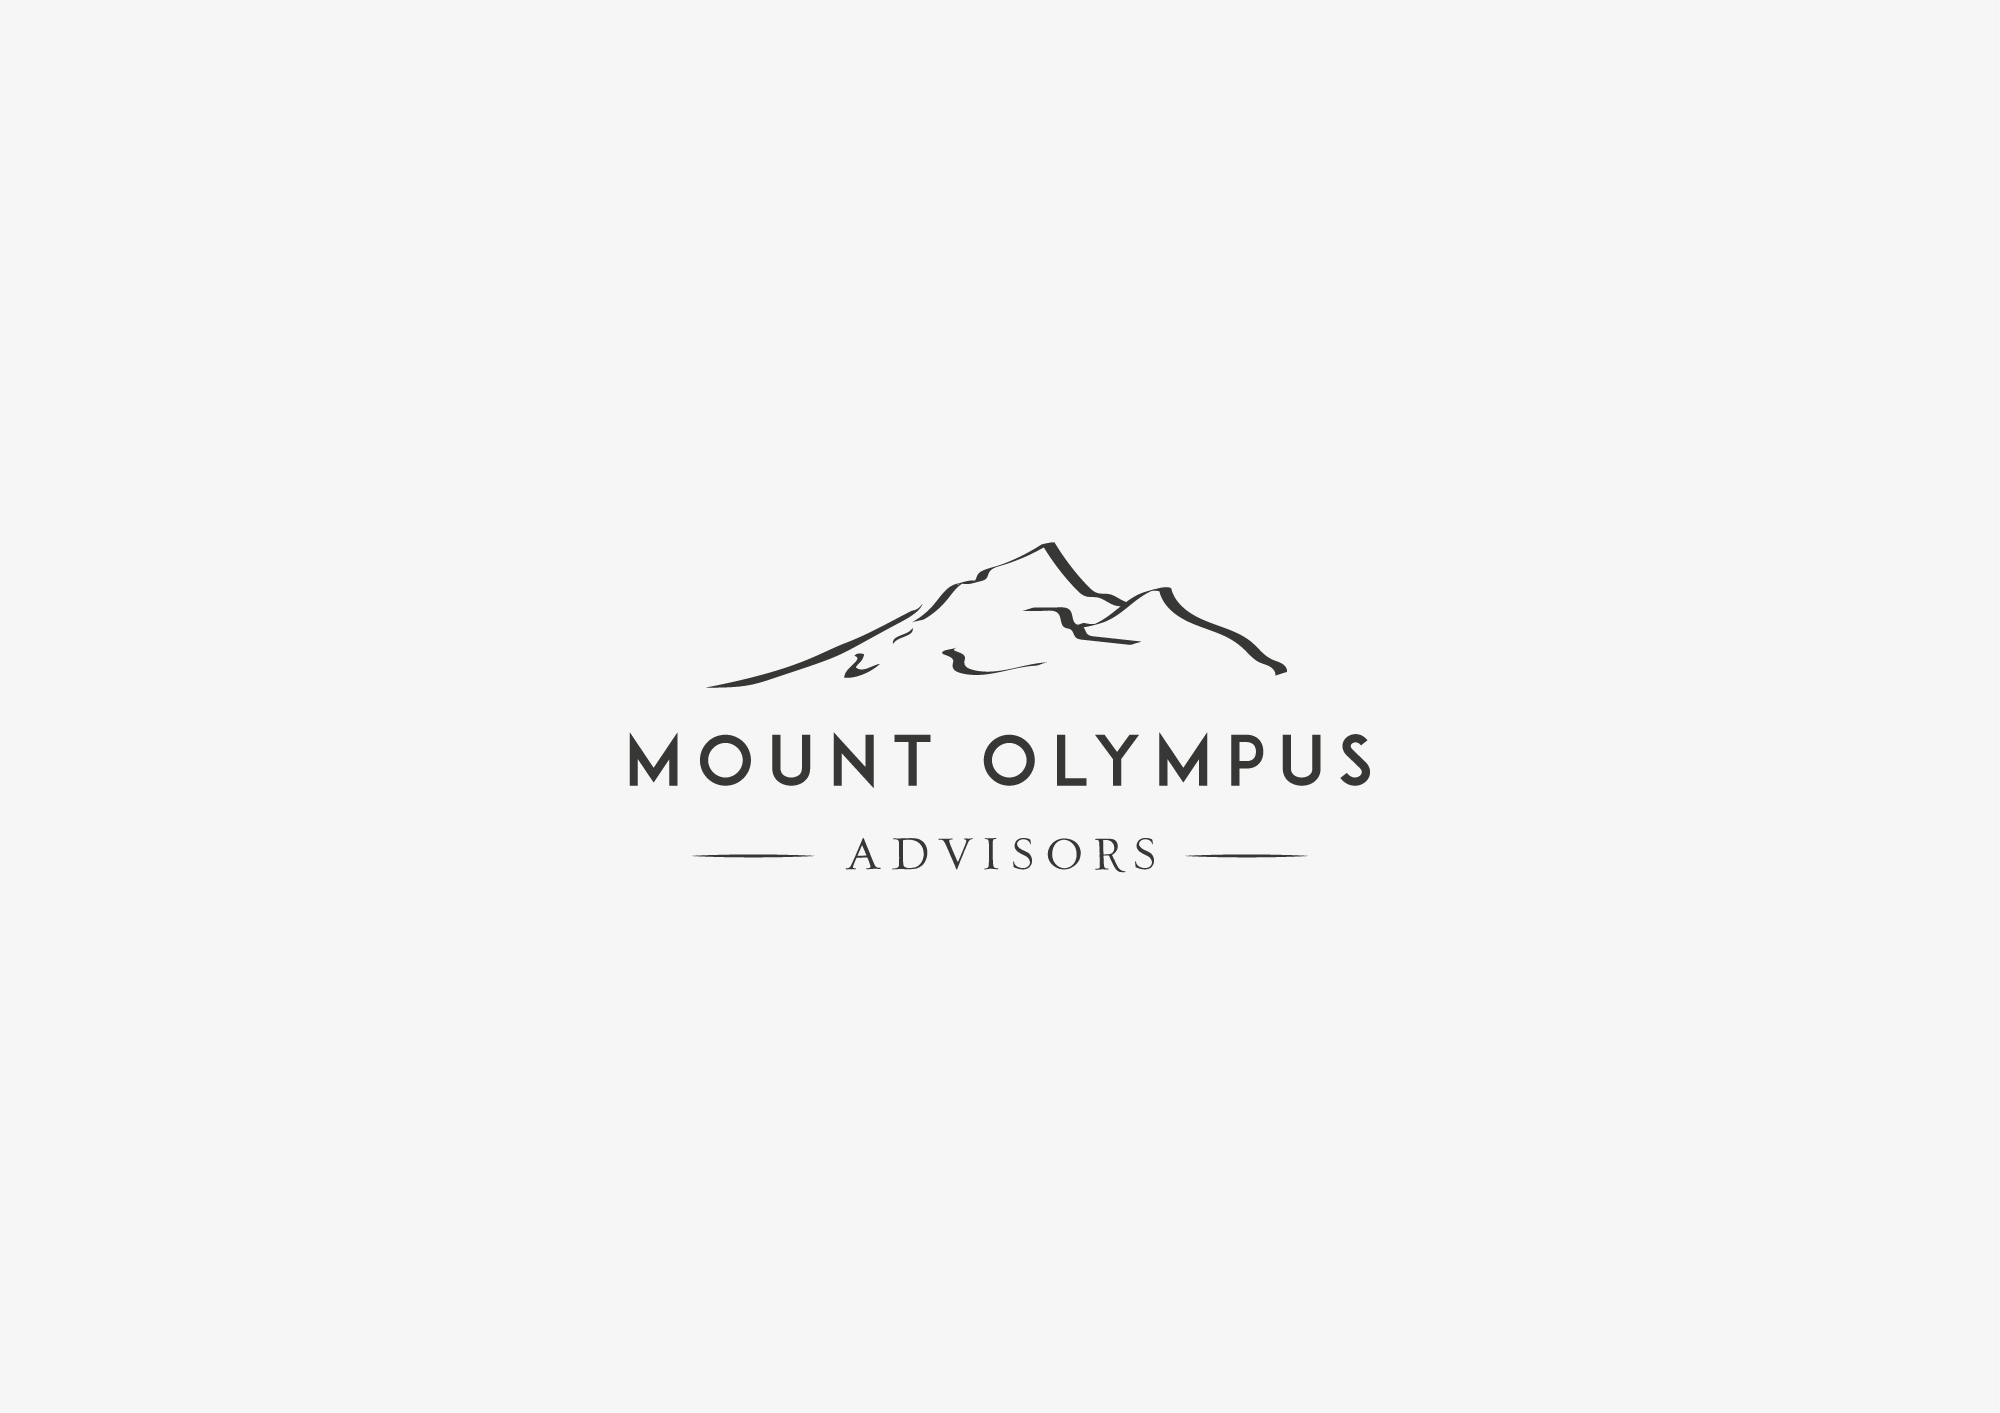 Attractive design of mountain landscape to appeal to professionals